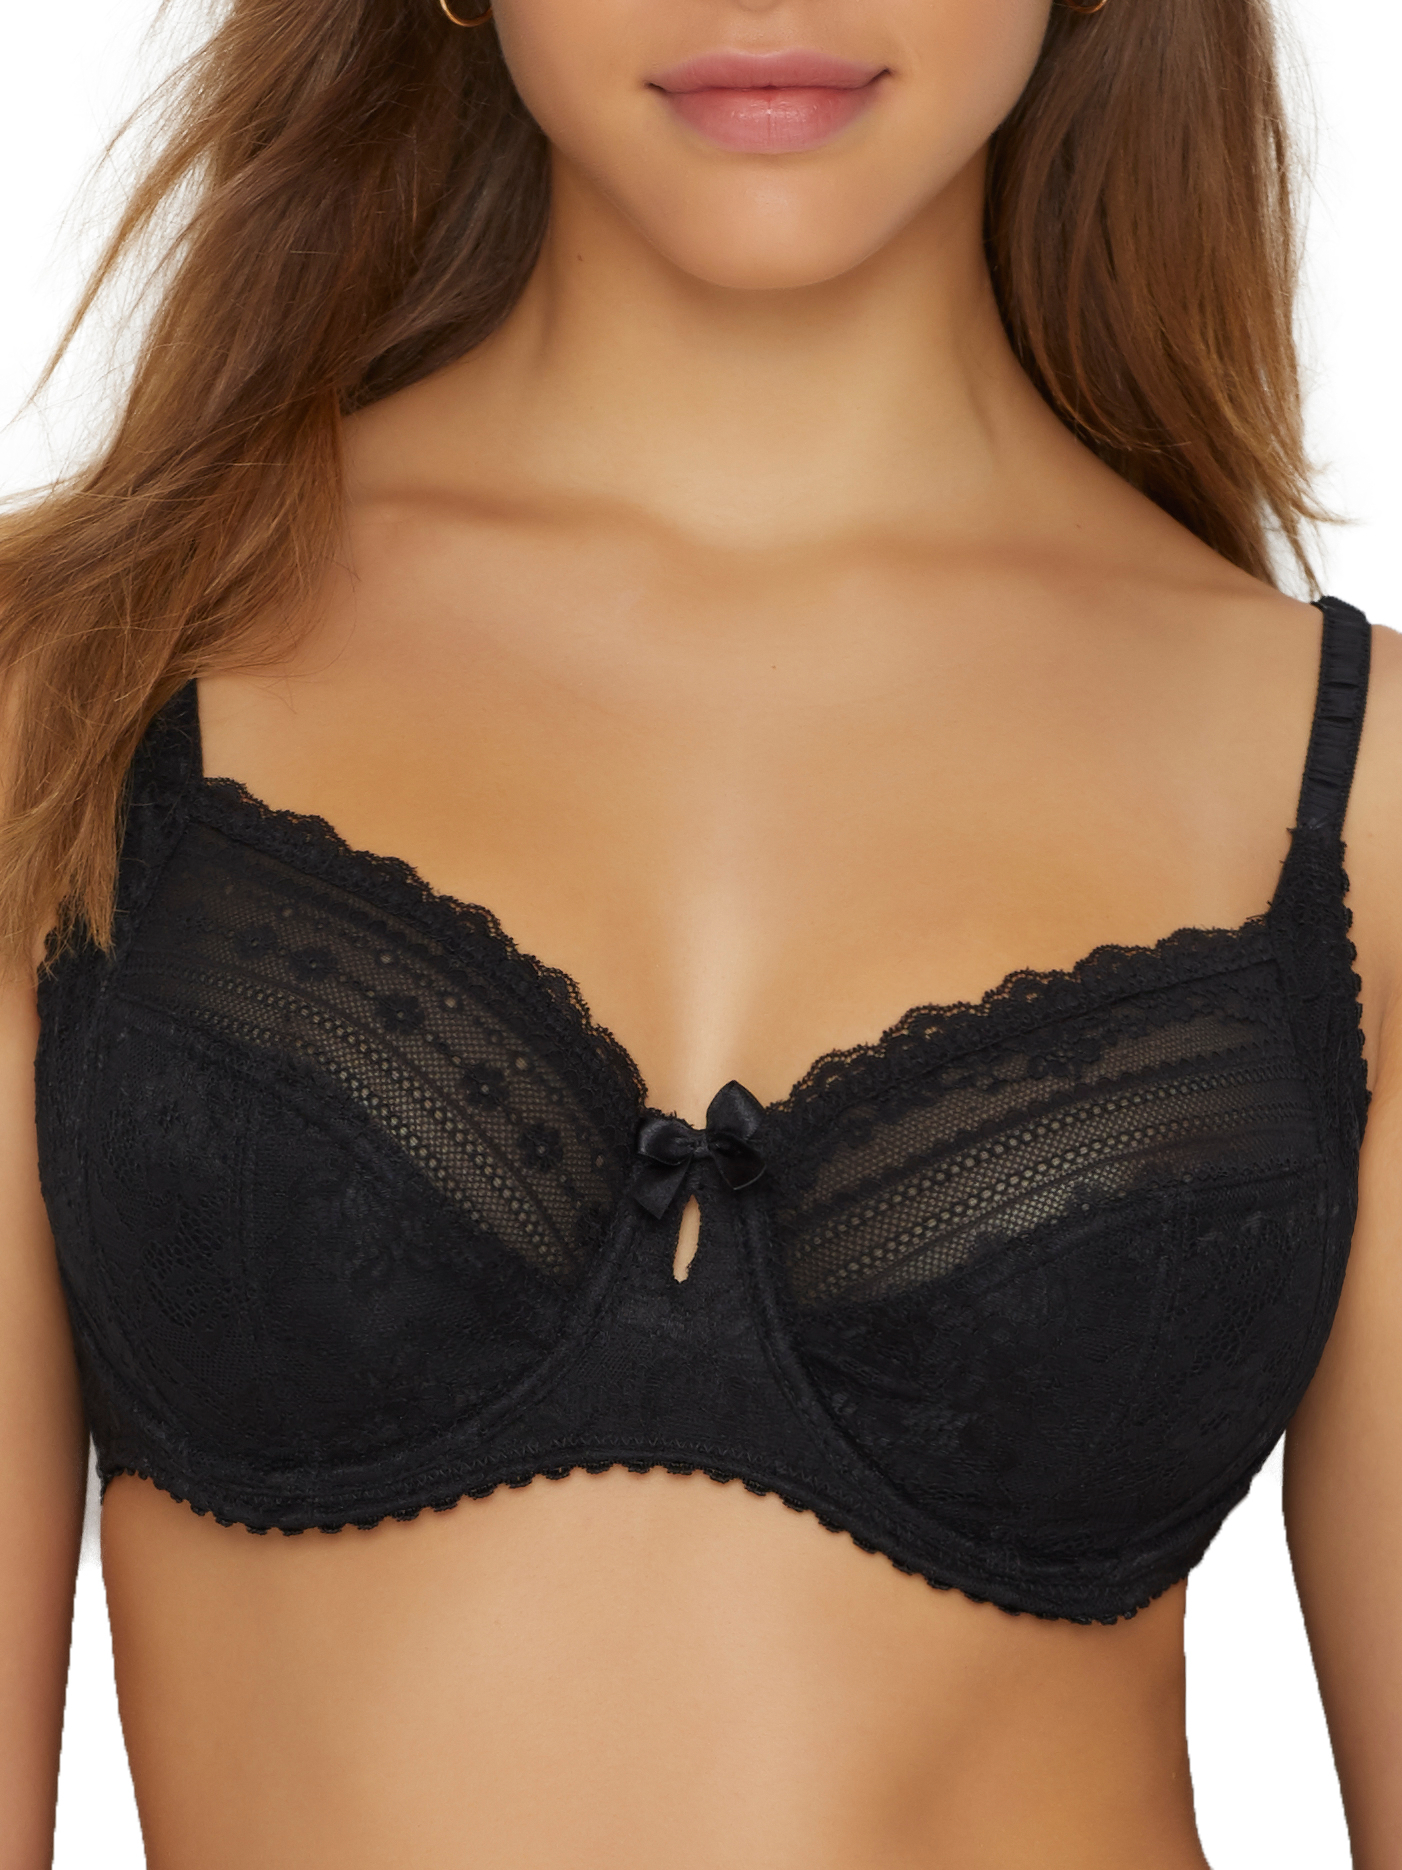 Pour Moi Remix Side Support Bra Women/'s